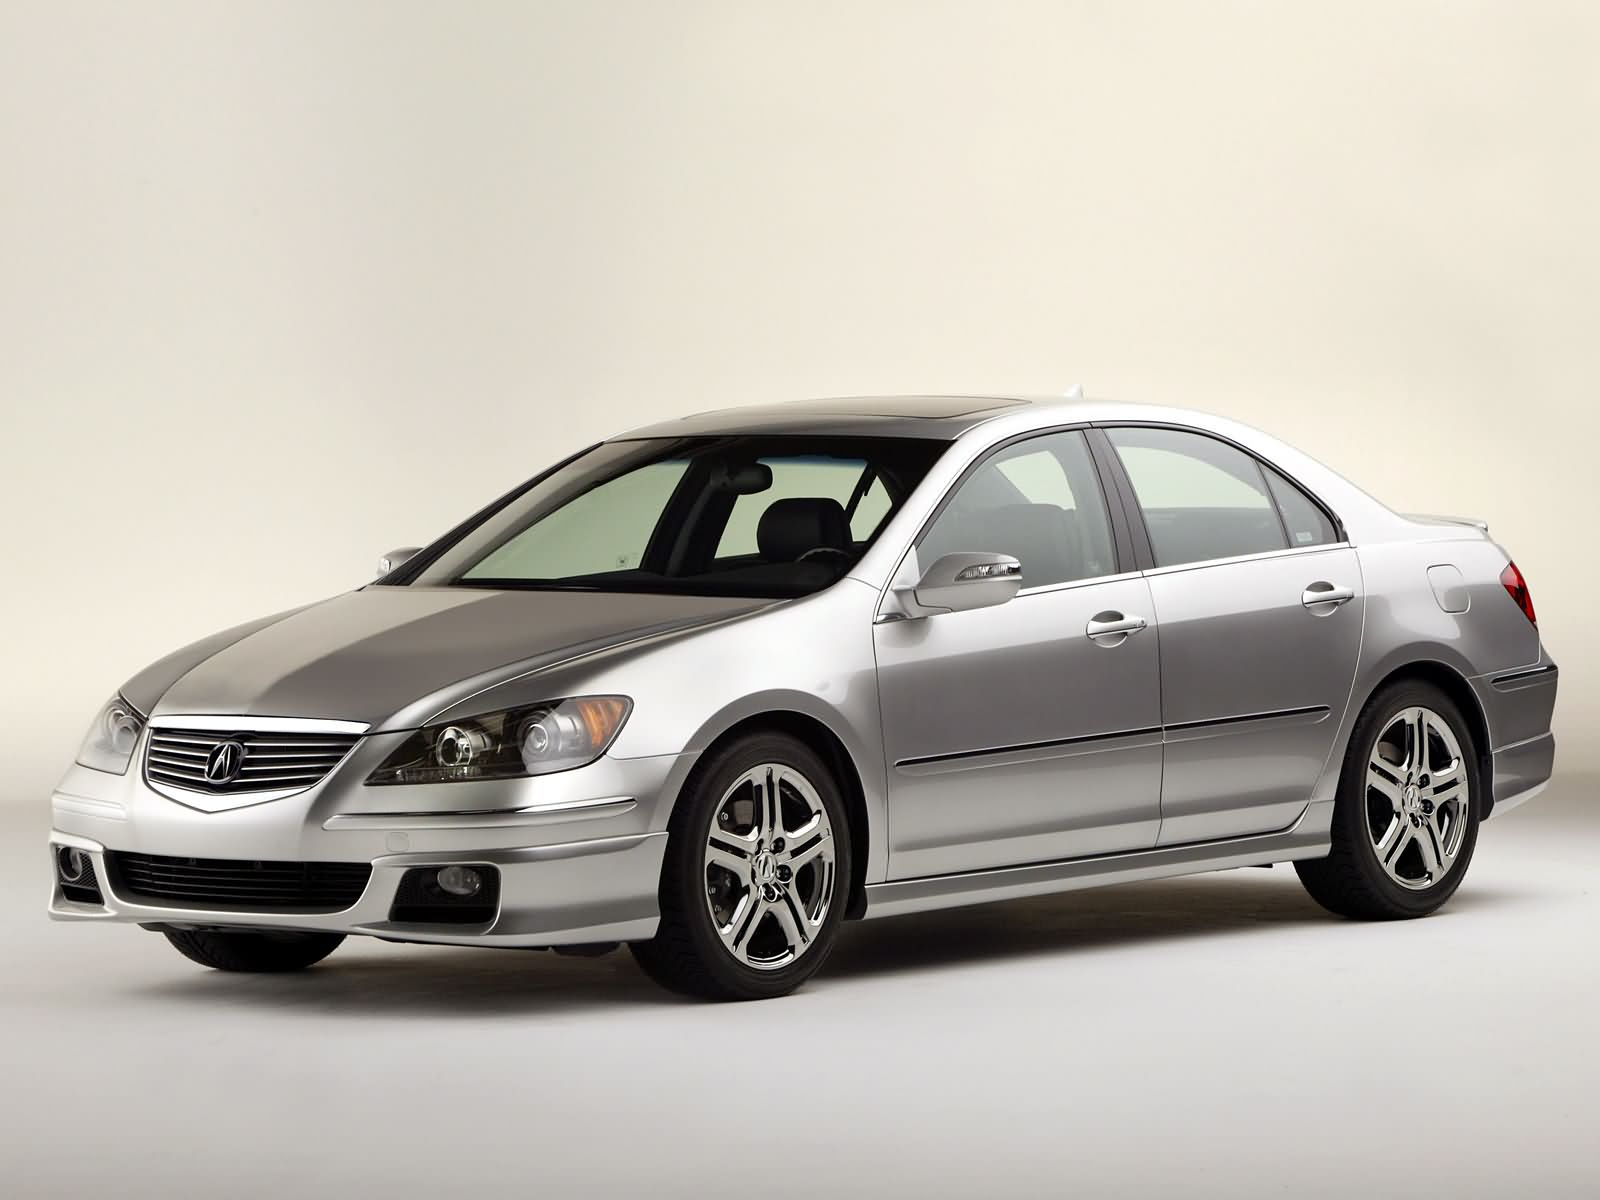 acura rl a spec picture 16750 acura photo gallery. Black Bedroom Furniture Sets. Home Design Ideas